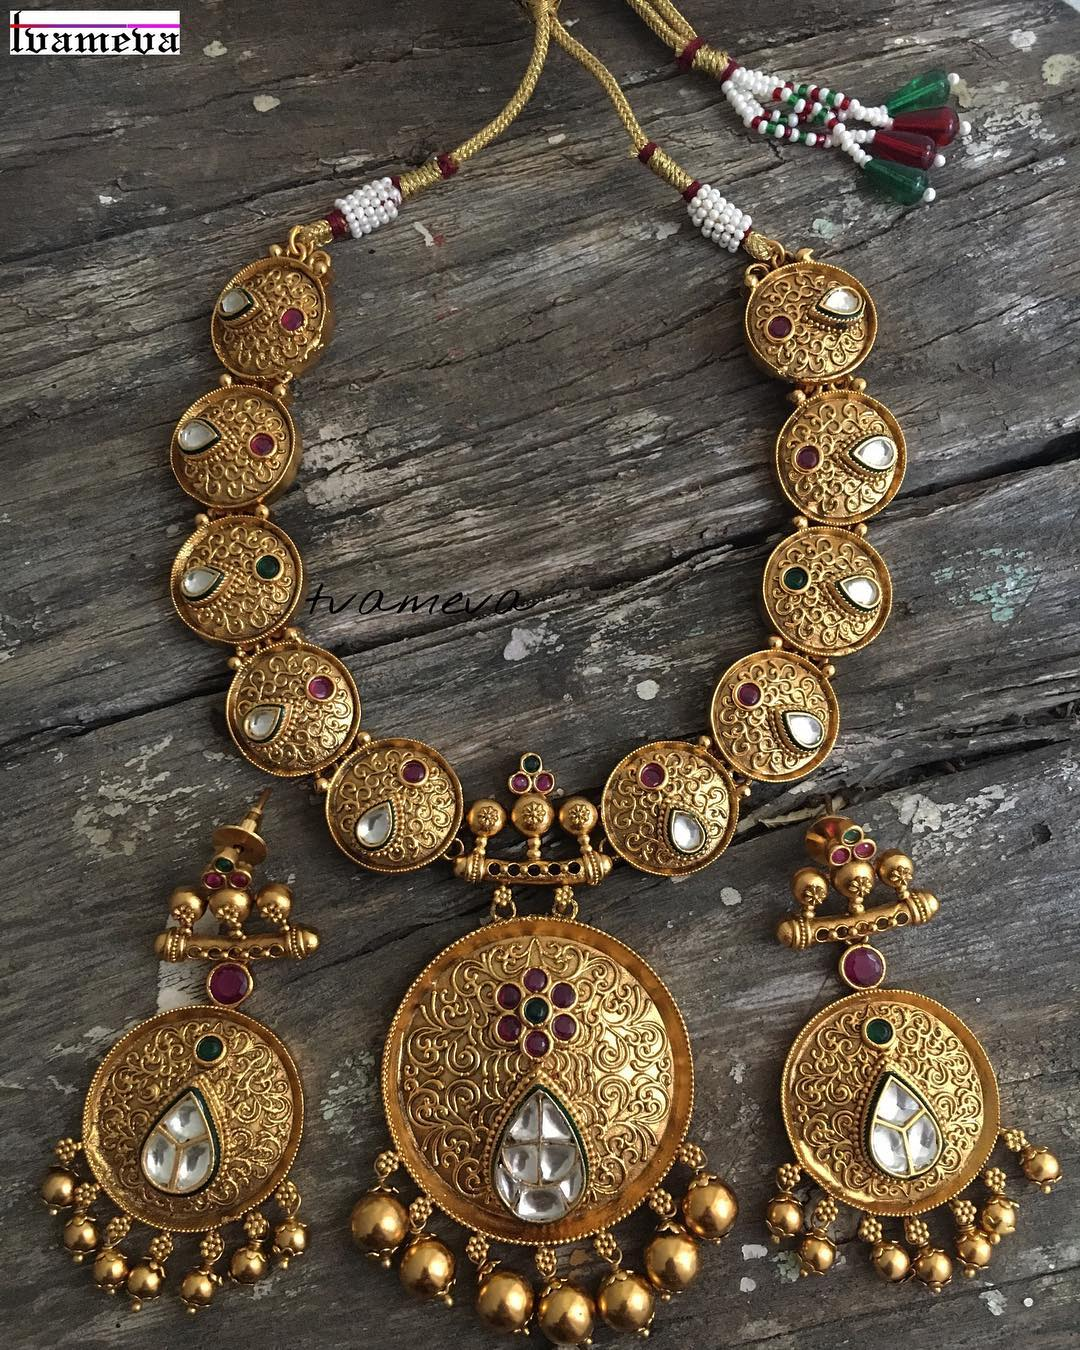 Kundan Set From Tvameva South India